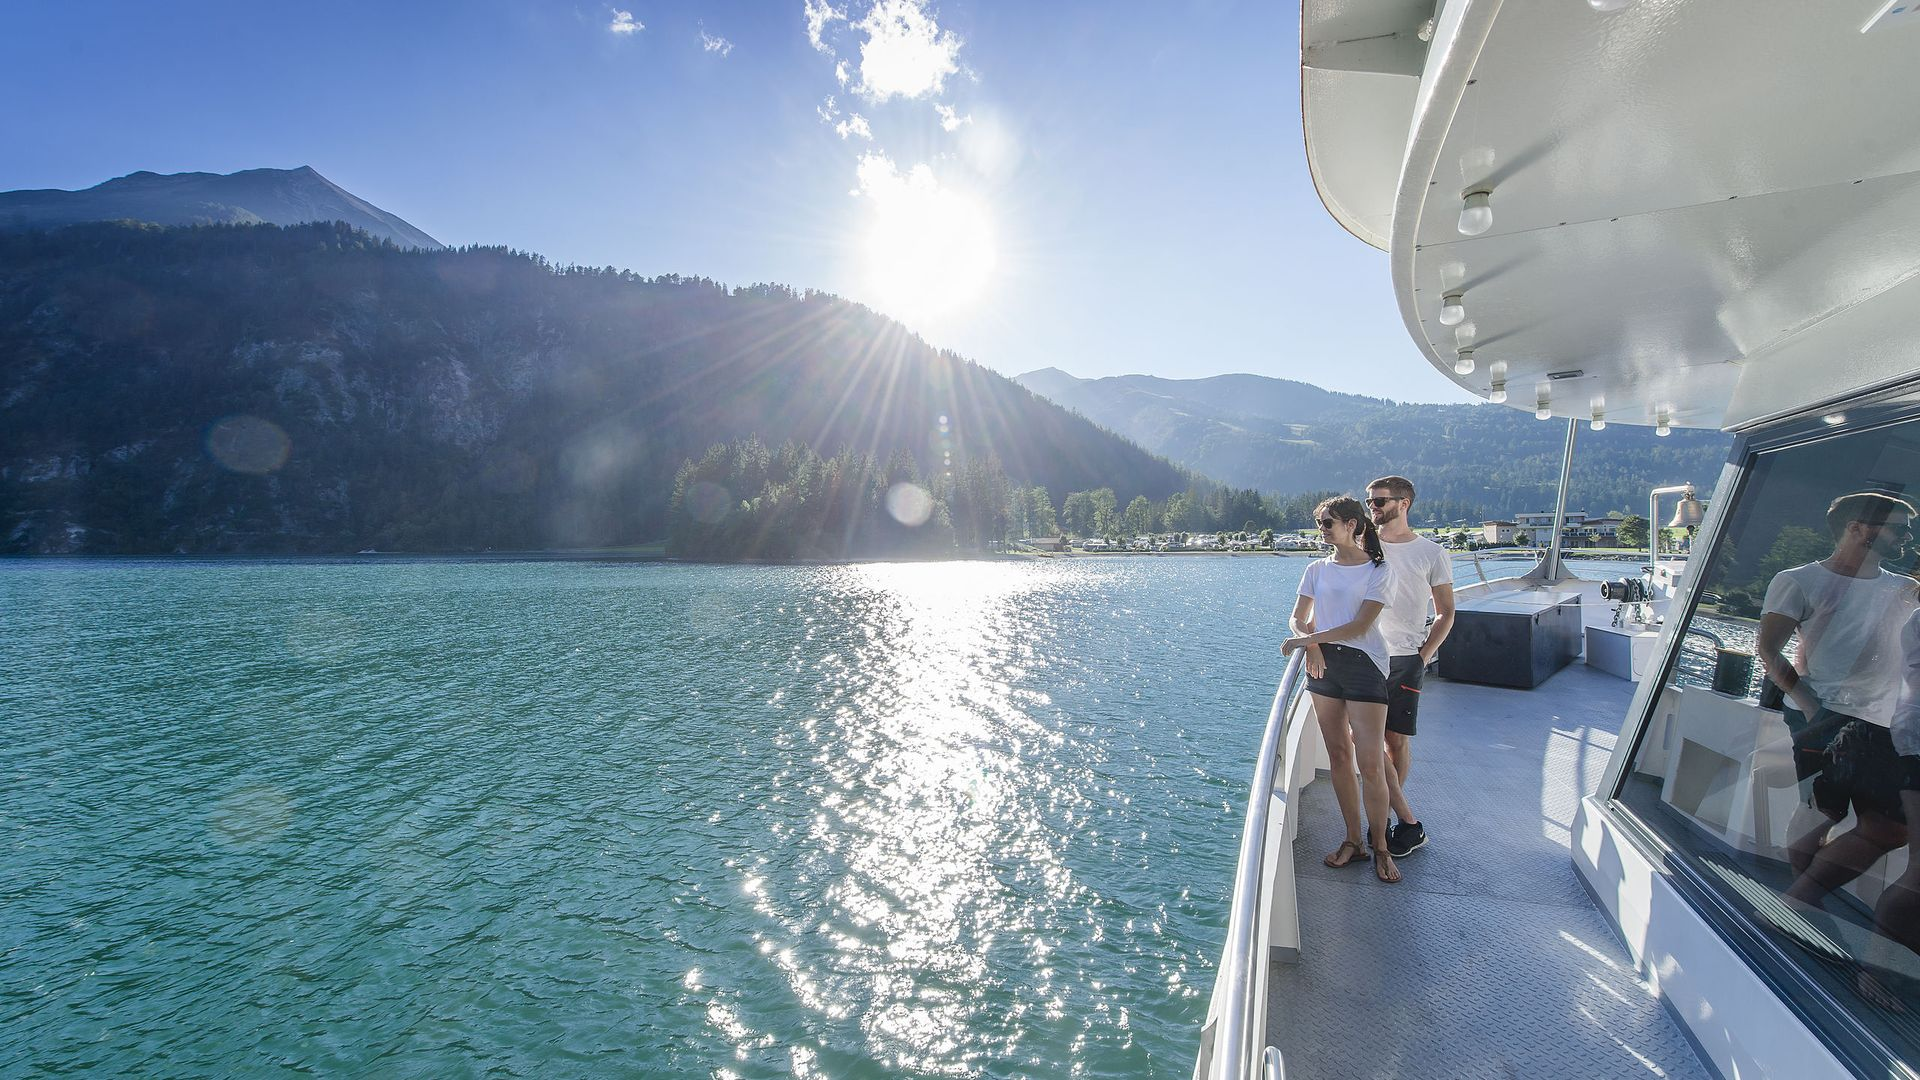 With a ship on Lake Achensee